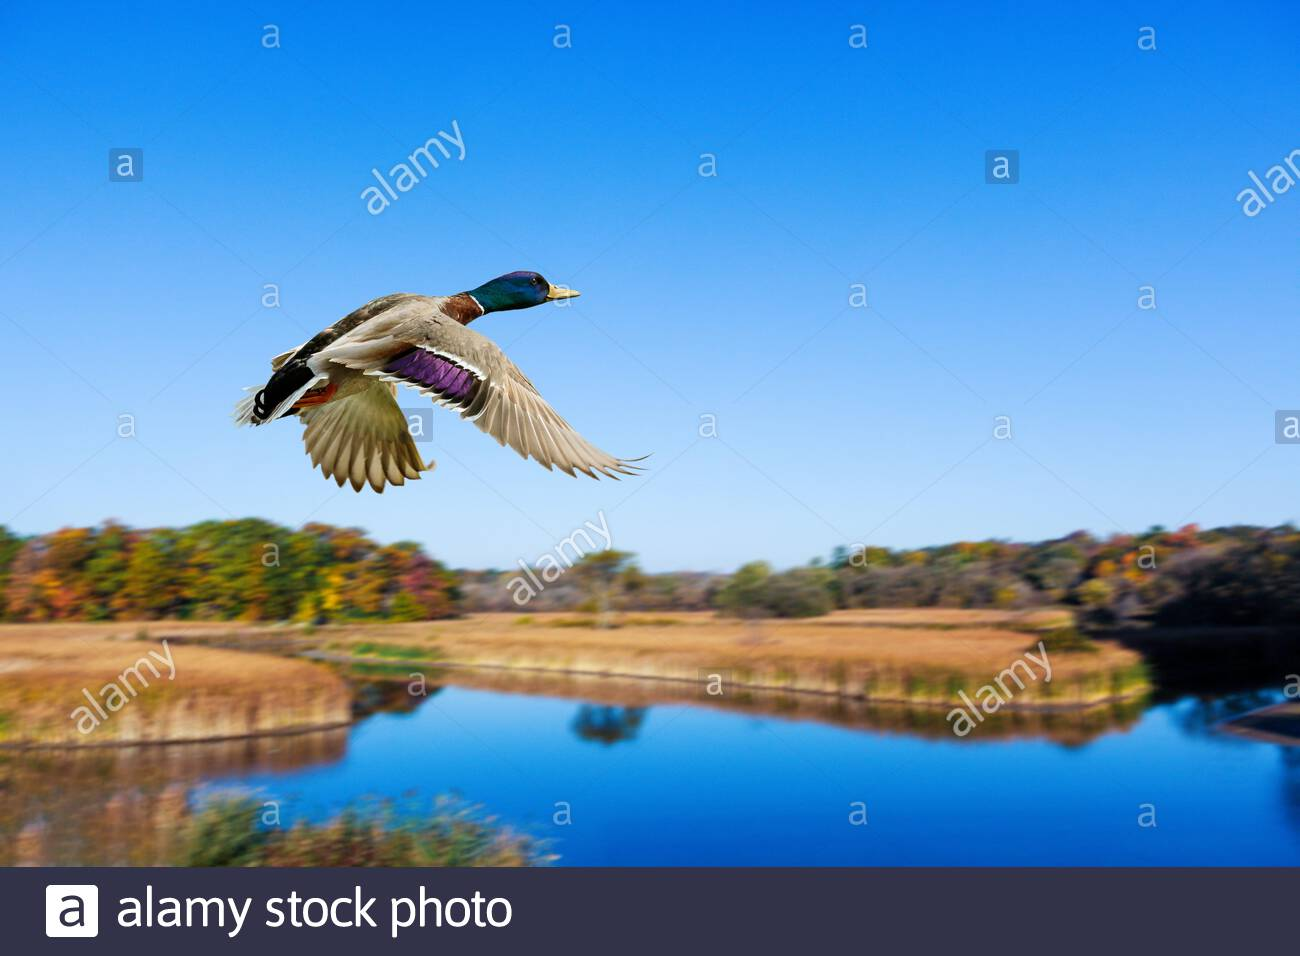 mallard-duck-anas-platyrhynchos-flying-o